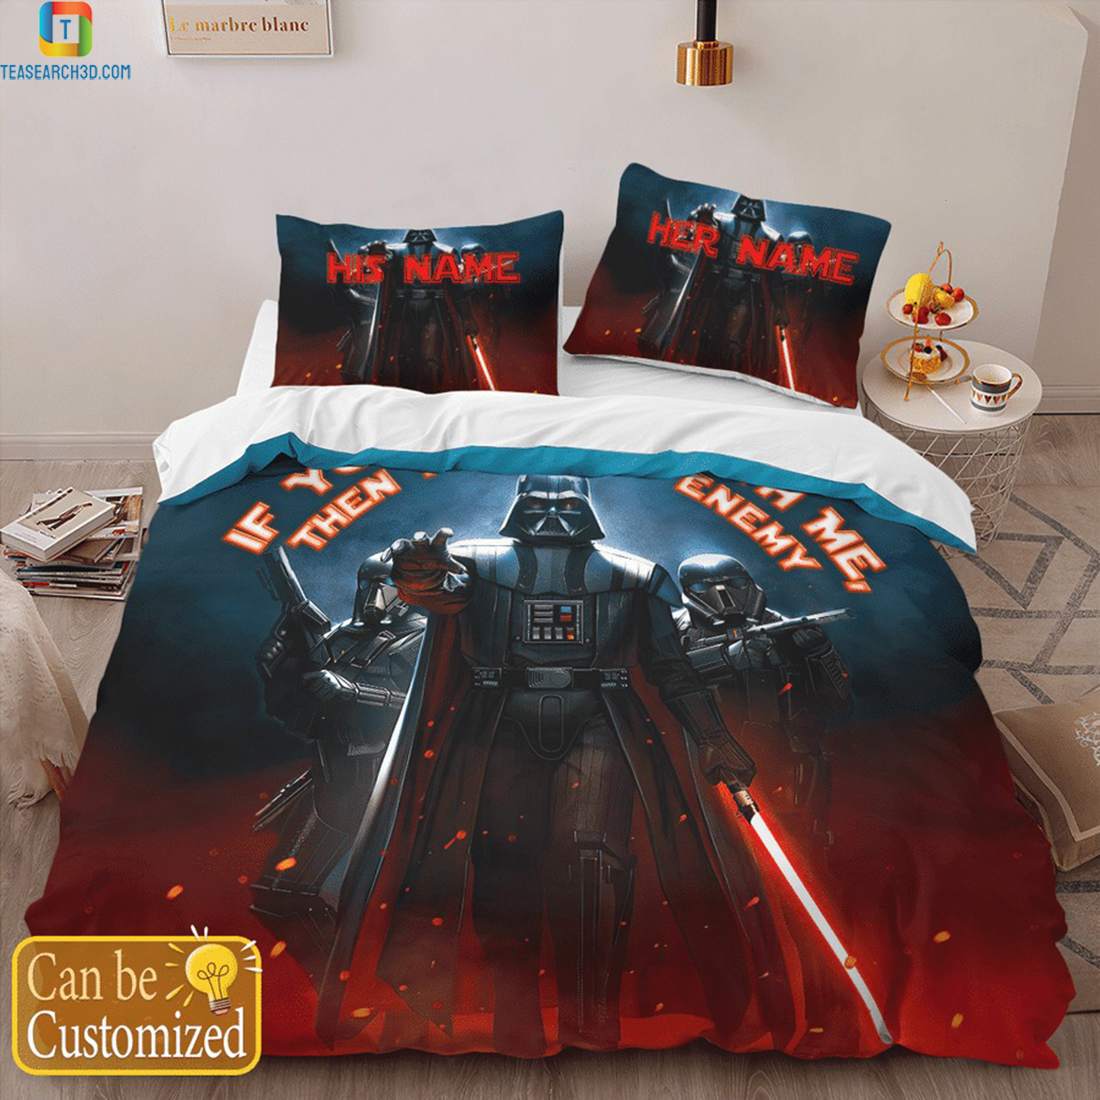 Personalized custom name star wars darth vader if you're not with me bedding set 2